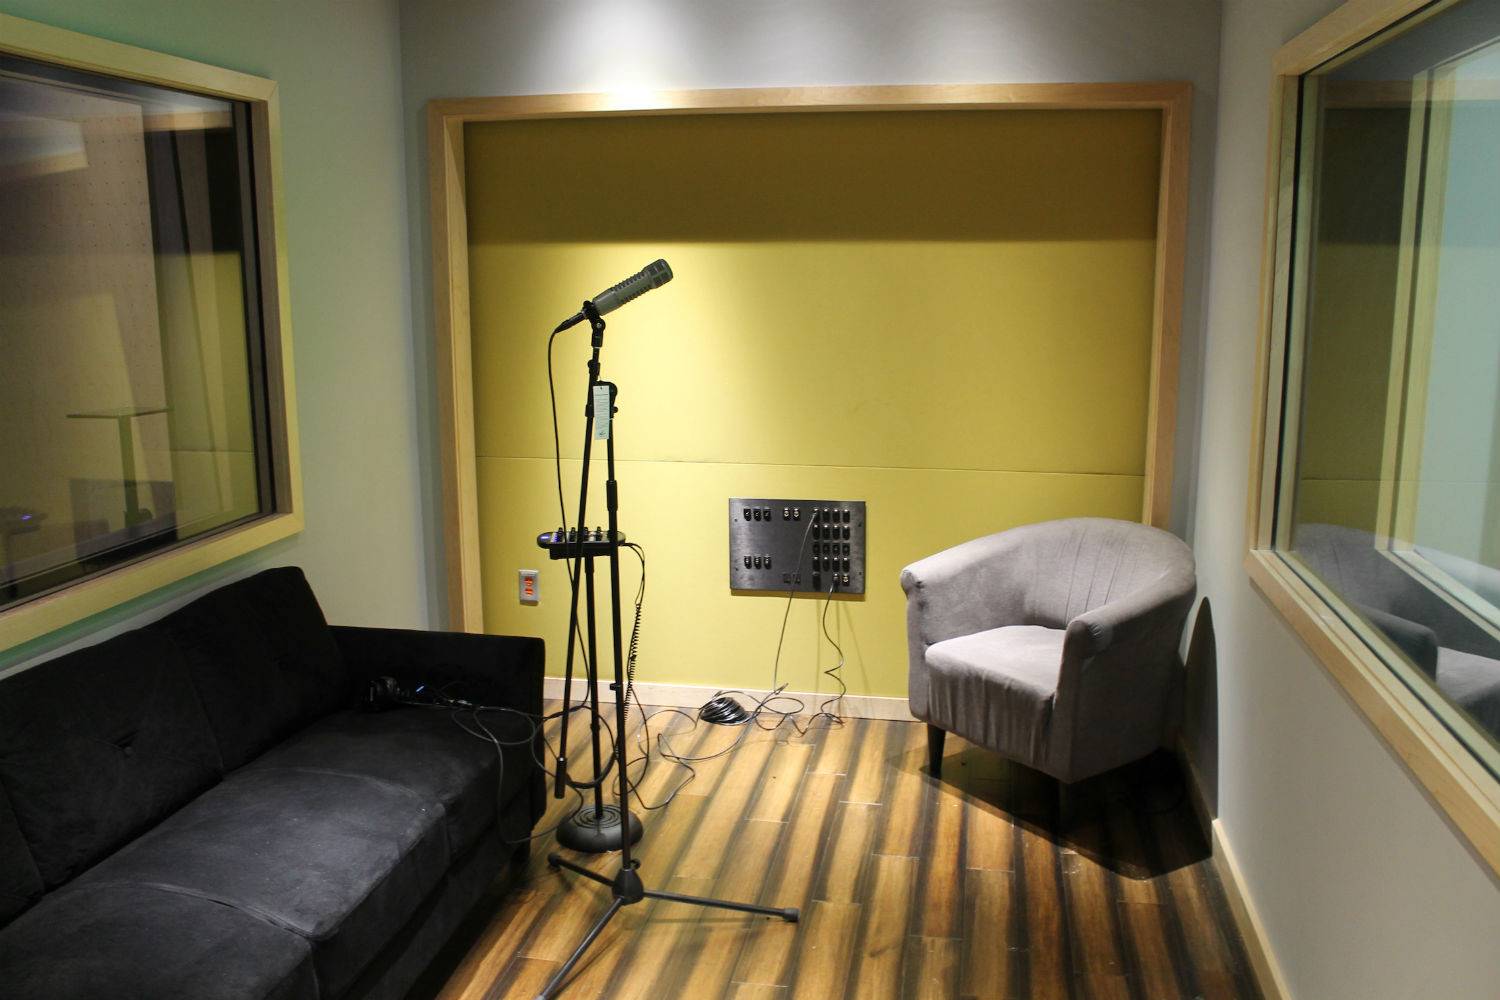 MJH Studios in NJ, designed by WSDG, is a world-class recording and production facility for the main use of creating audio and video healthcare-related content by MJH for their clients. ISO Booth